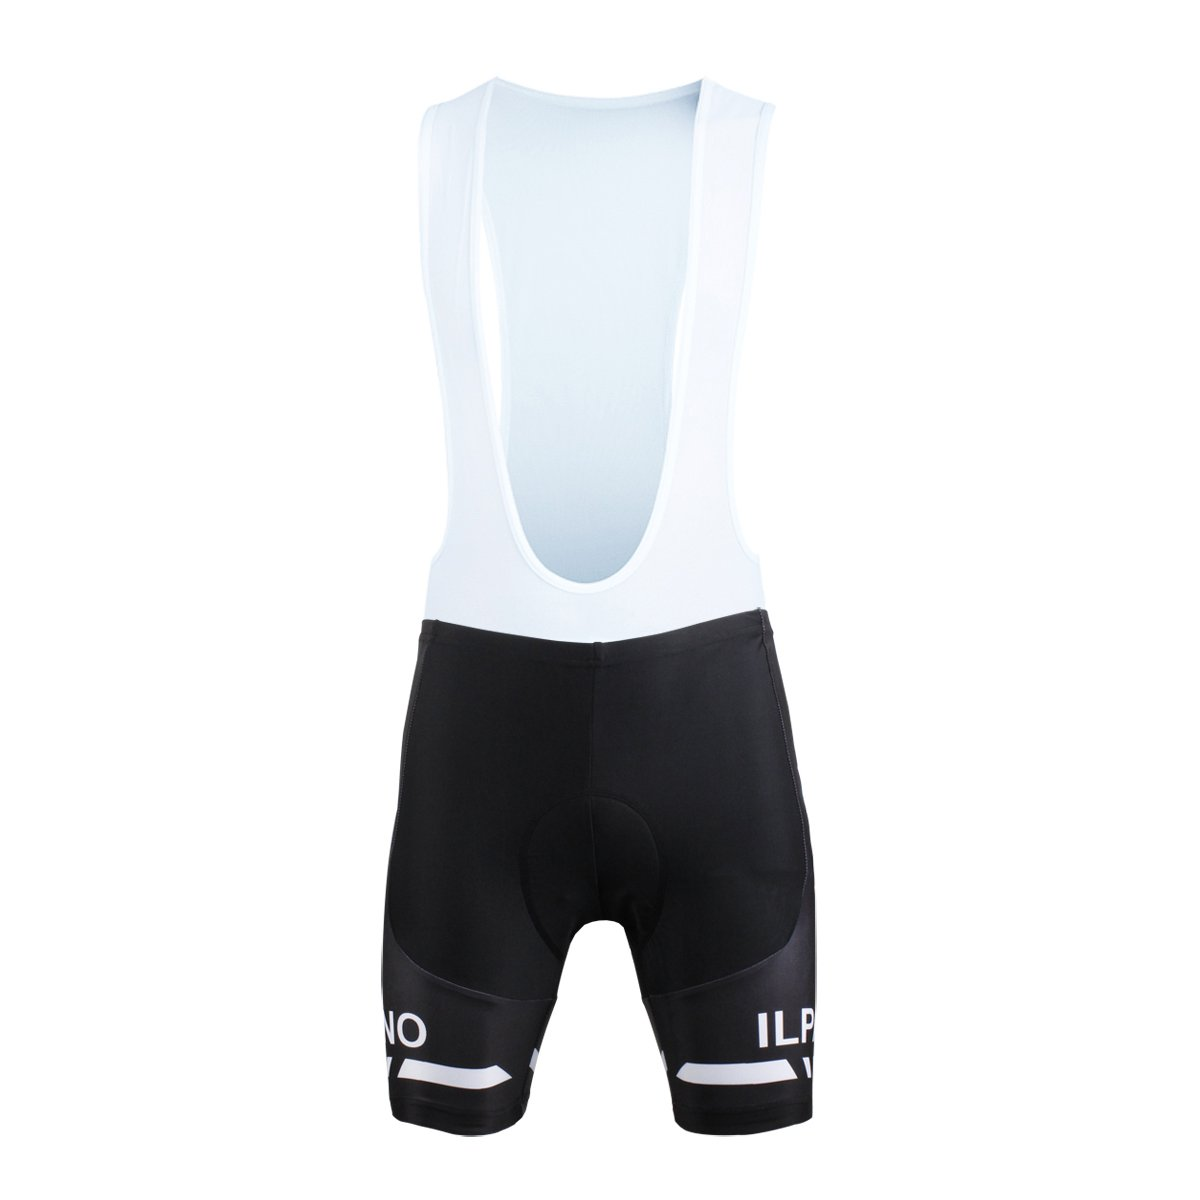 Paladin Men's Cycling Bib Shorts With Inner Padded Wholfhead Pattern Bike Jersey